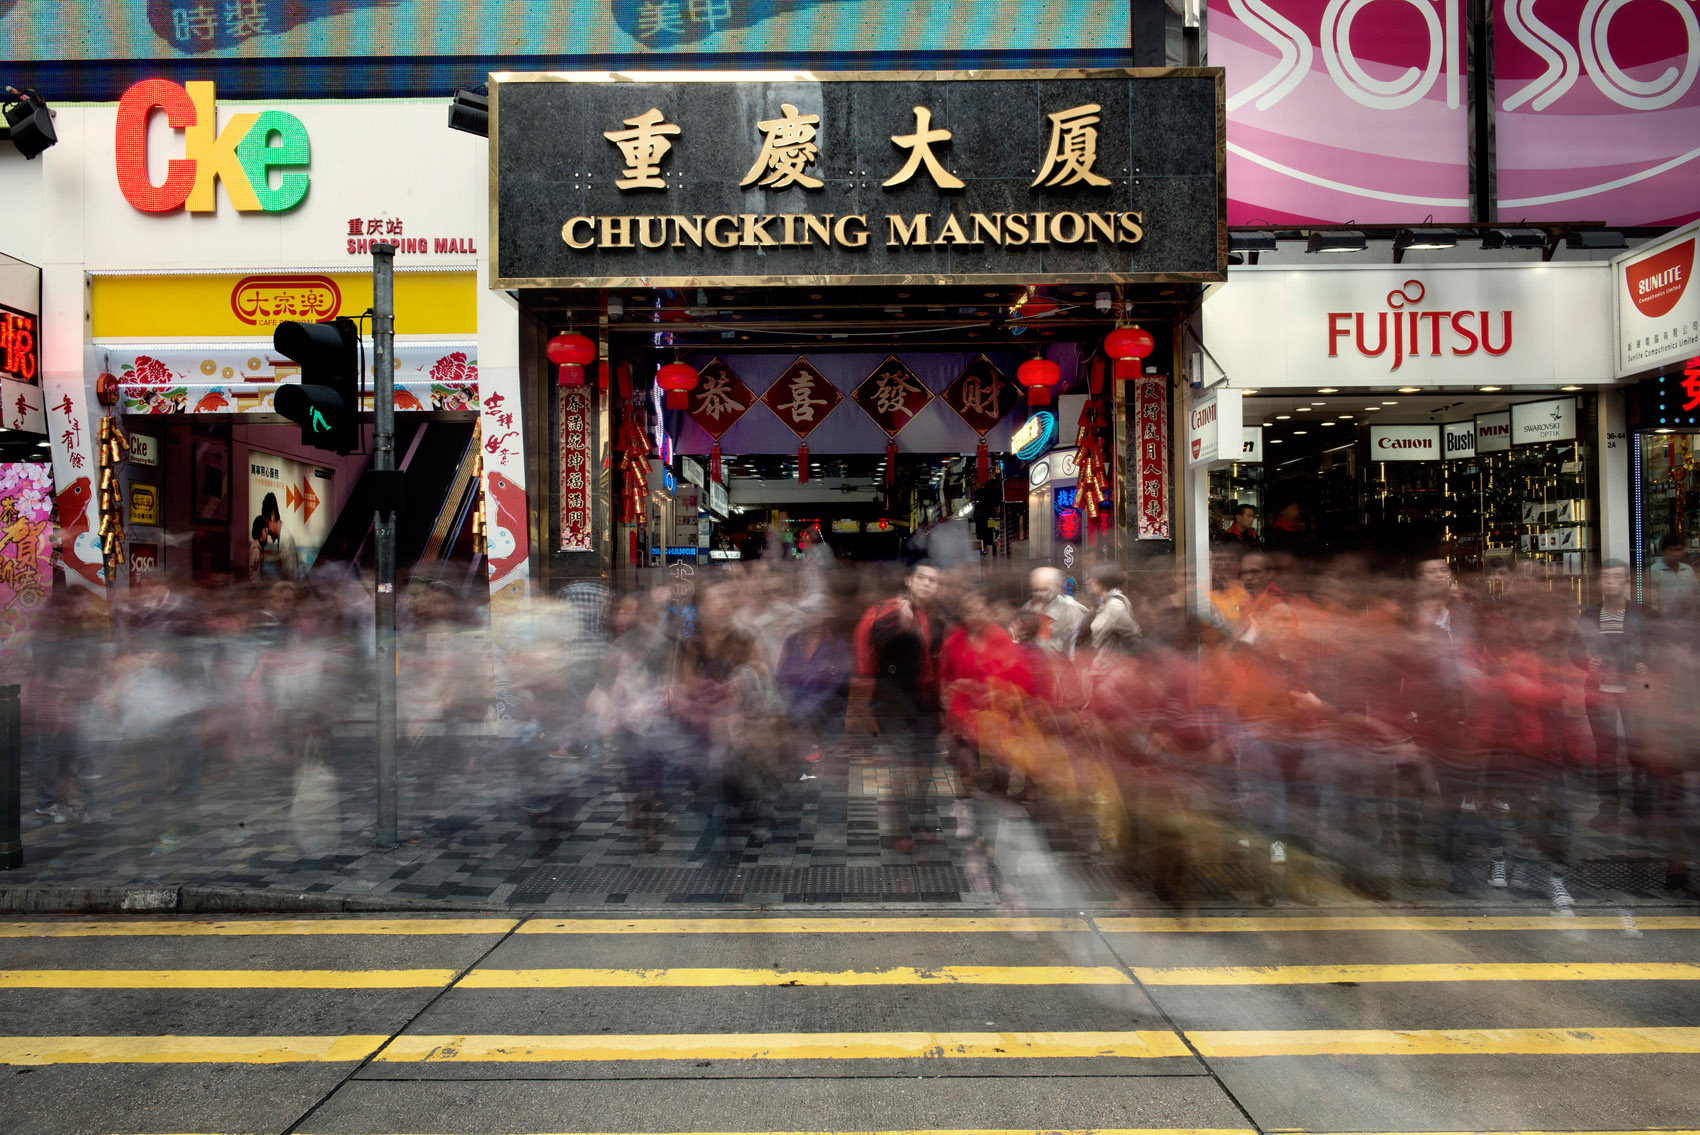 """Pedestrians walking in front of the Chungking Mansions. The Mansions are situated on Nathan Road also called the """"Golden Mile"""", a central street of Hong Kong heavy with traffic and popular with tourists. Stores lining Nathan Road make great business catering to the need of its crowds.."""